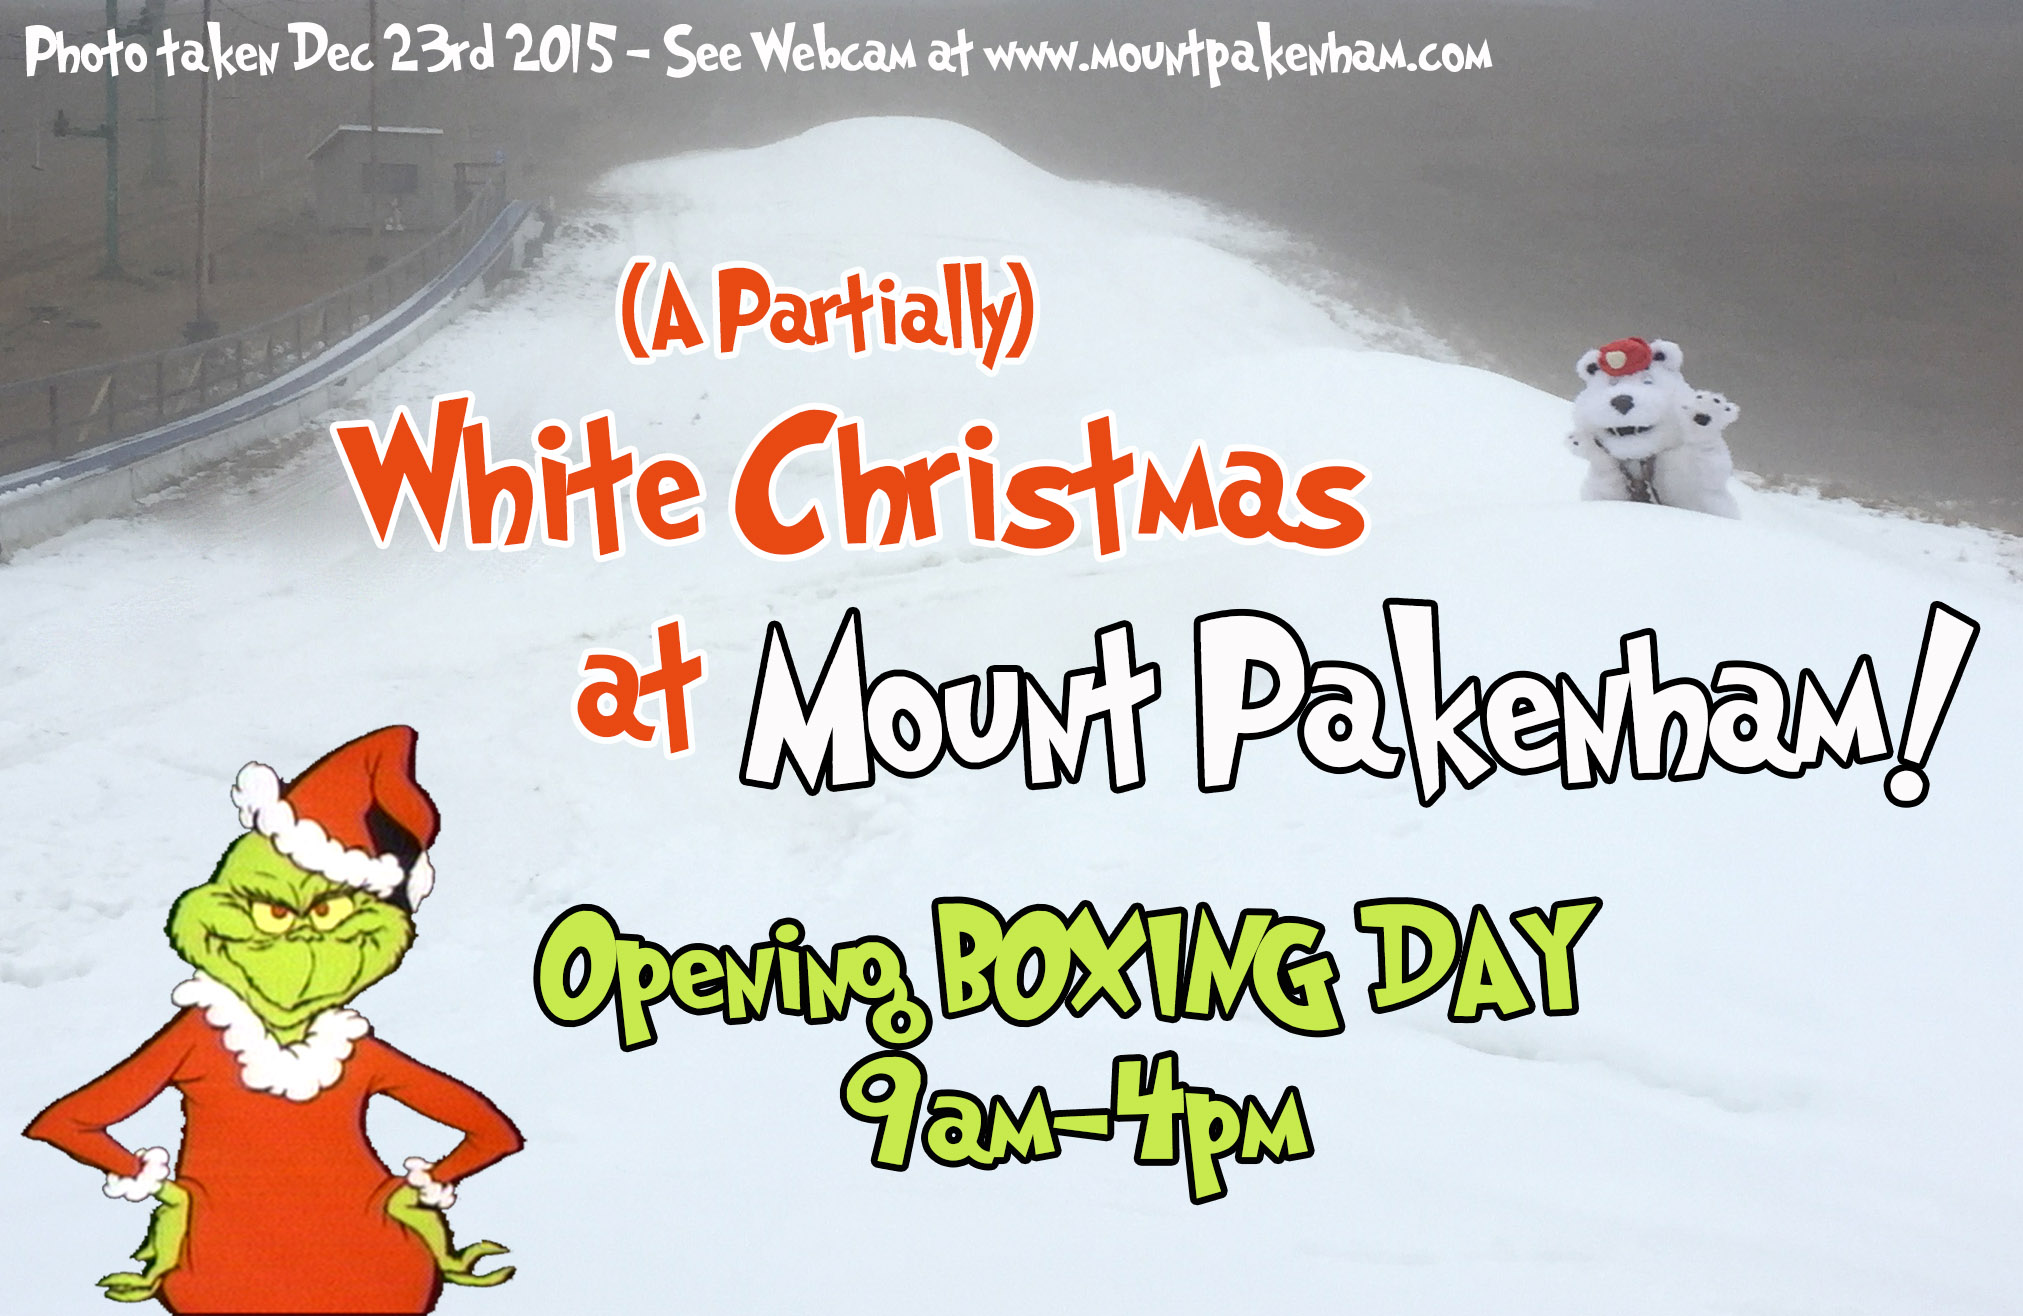 Opening Boxing Day!